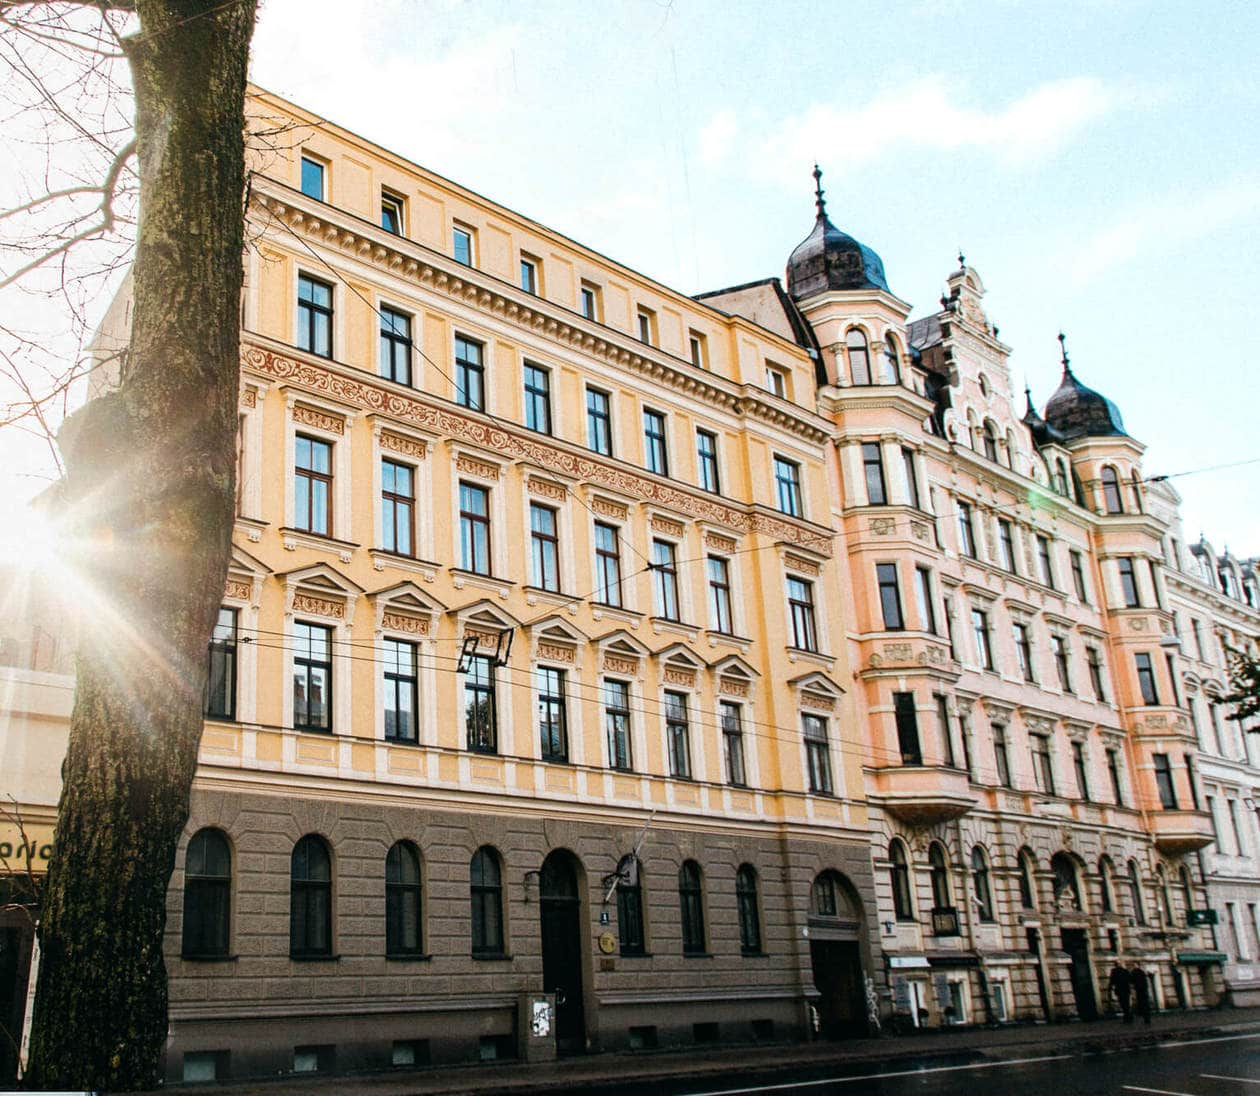 20 Pictures of Riga to Inspire You to Visit // Art Nouveau